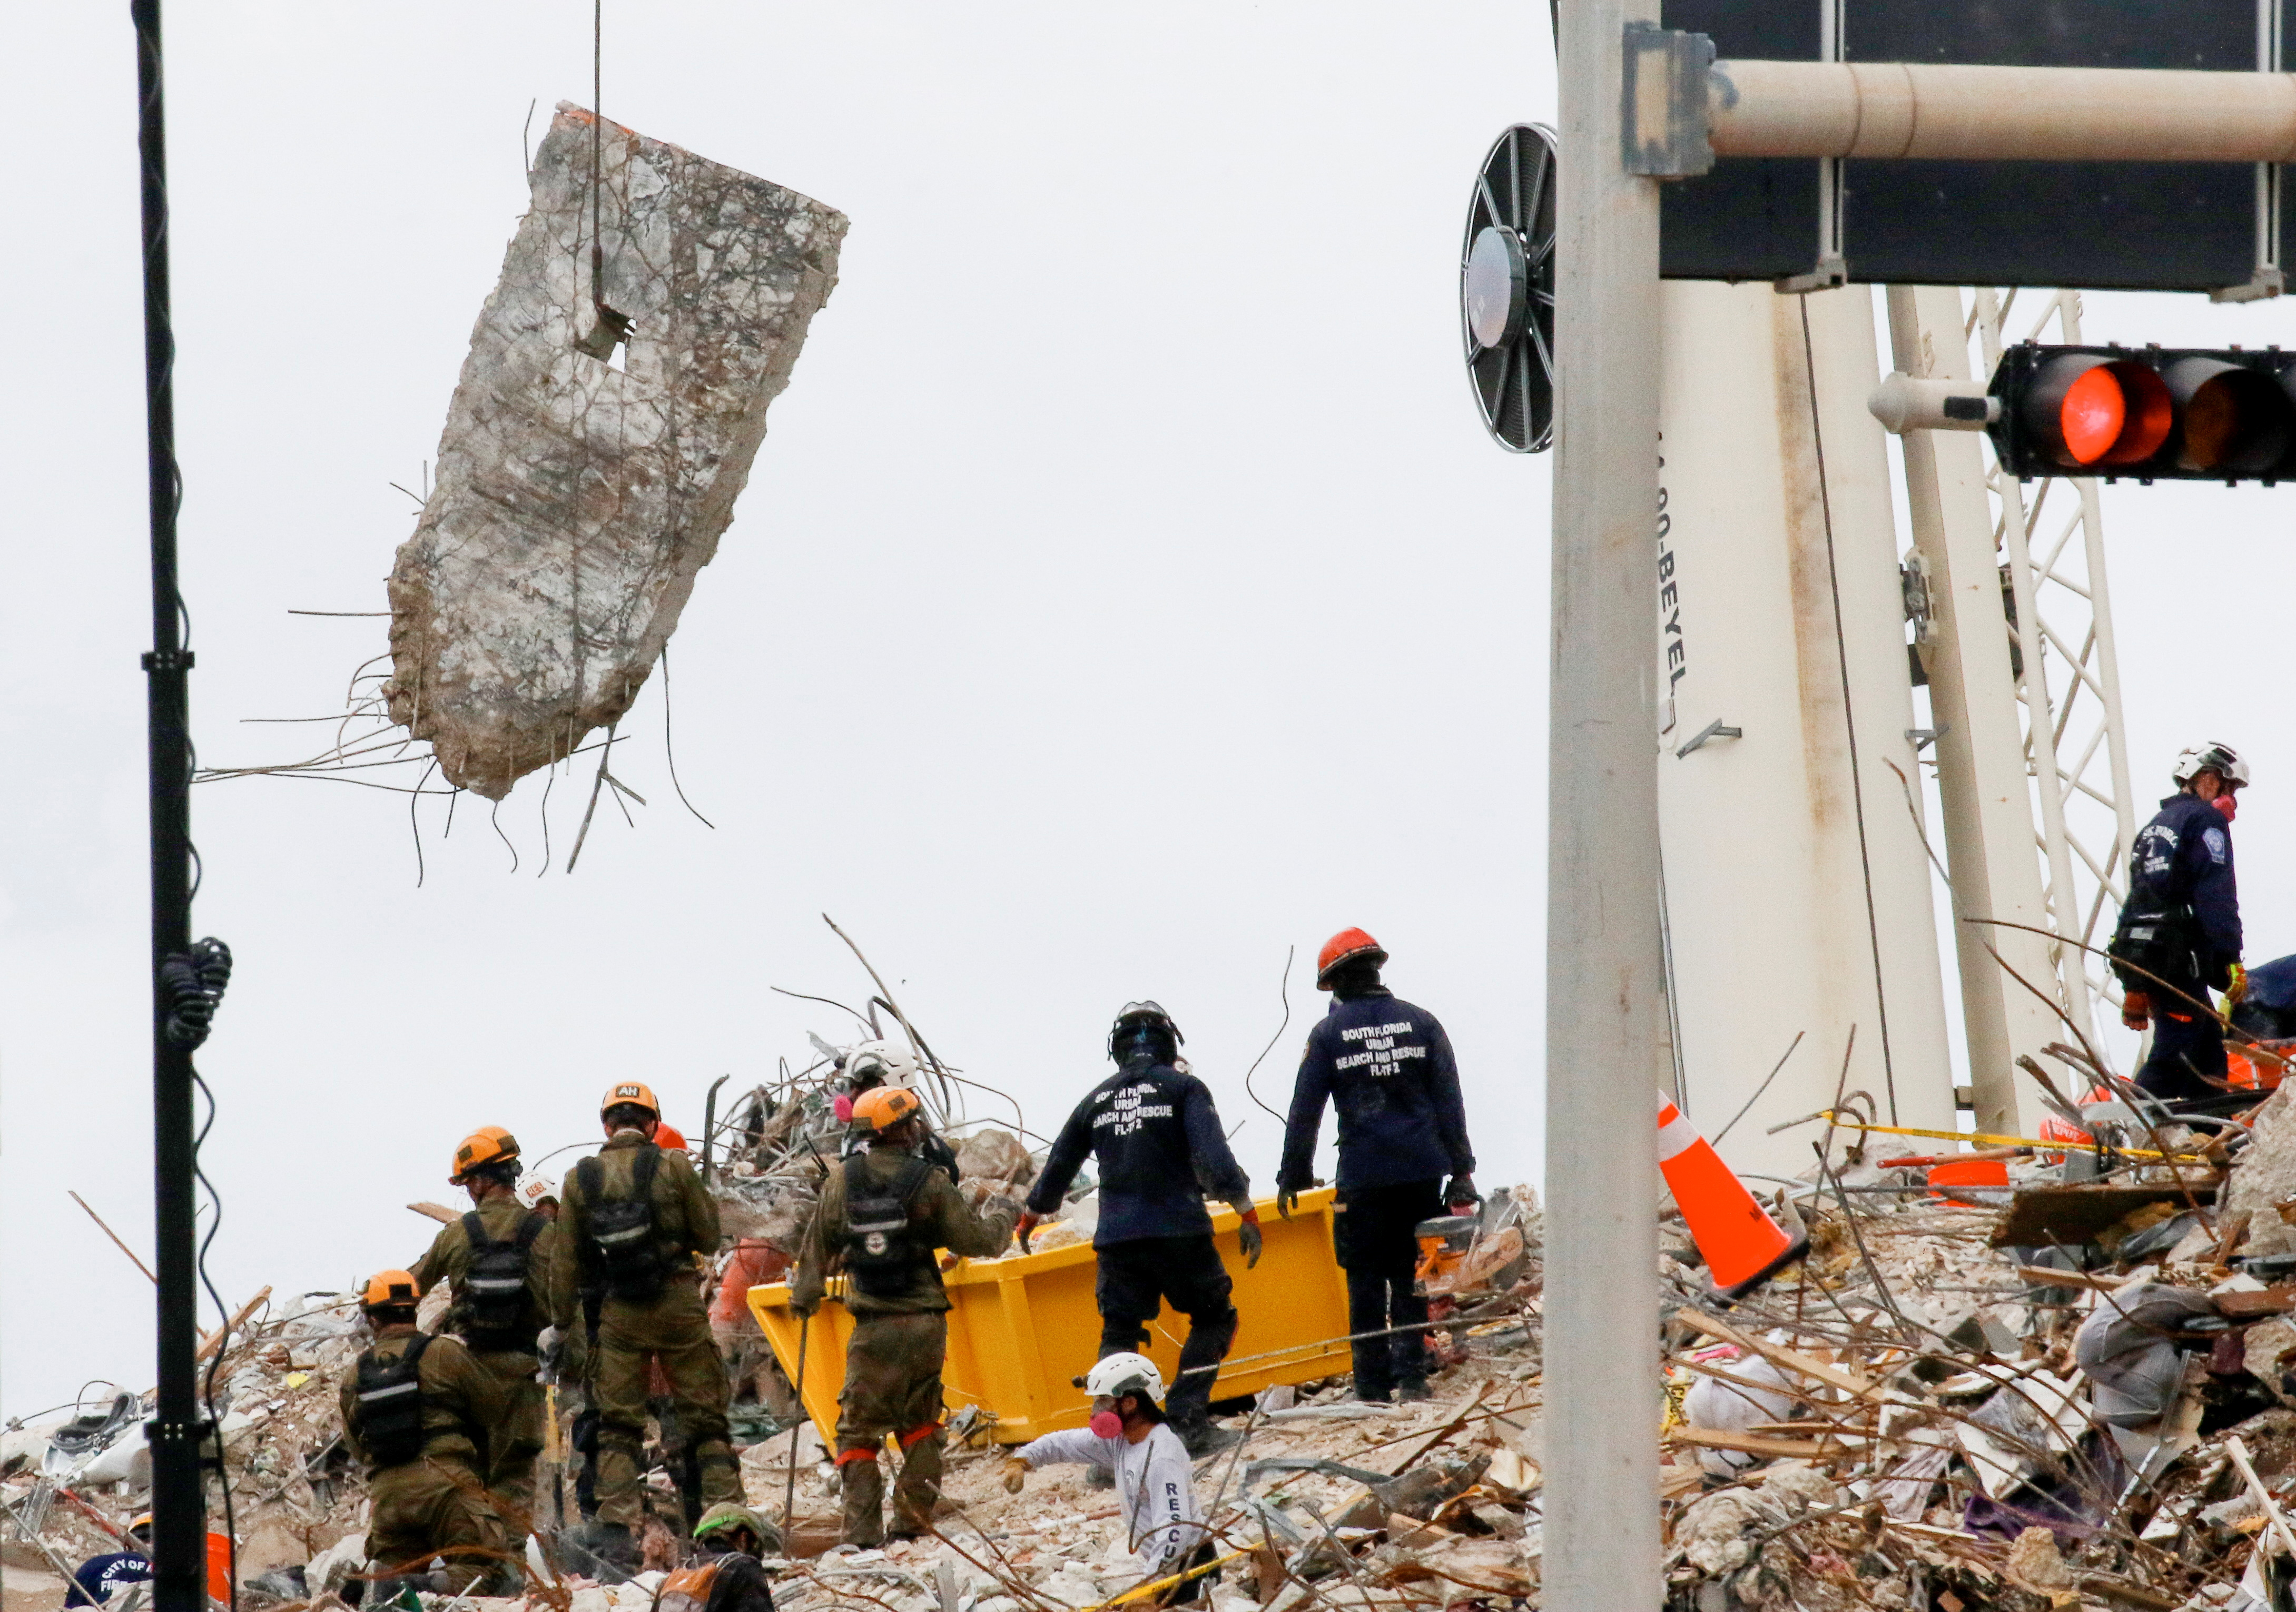 Emergency workers conduct search and rescue efforts at the site of a partially collapsed residential building in Surfside, near Miami Beach, Florida, U.S. June 29, 2021. REUTERS/Joe Skipper